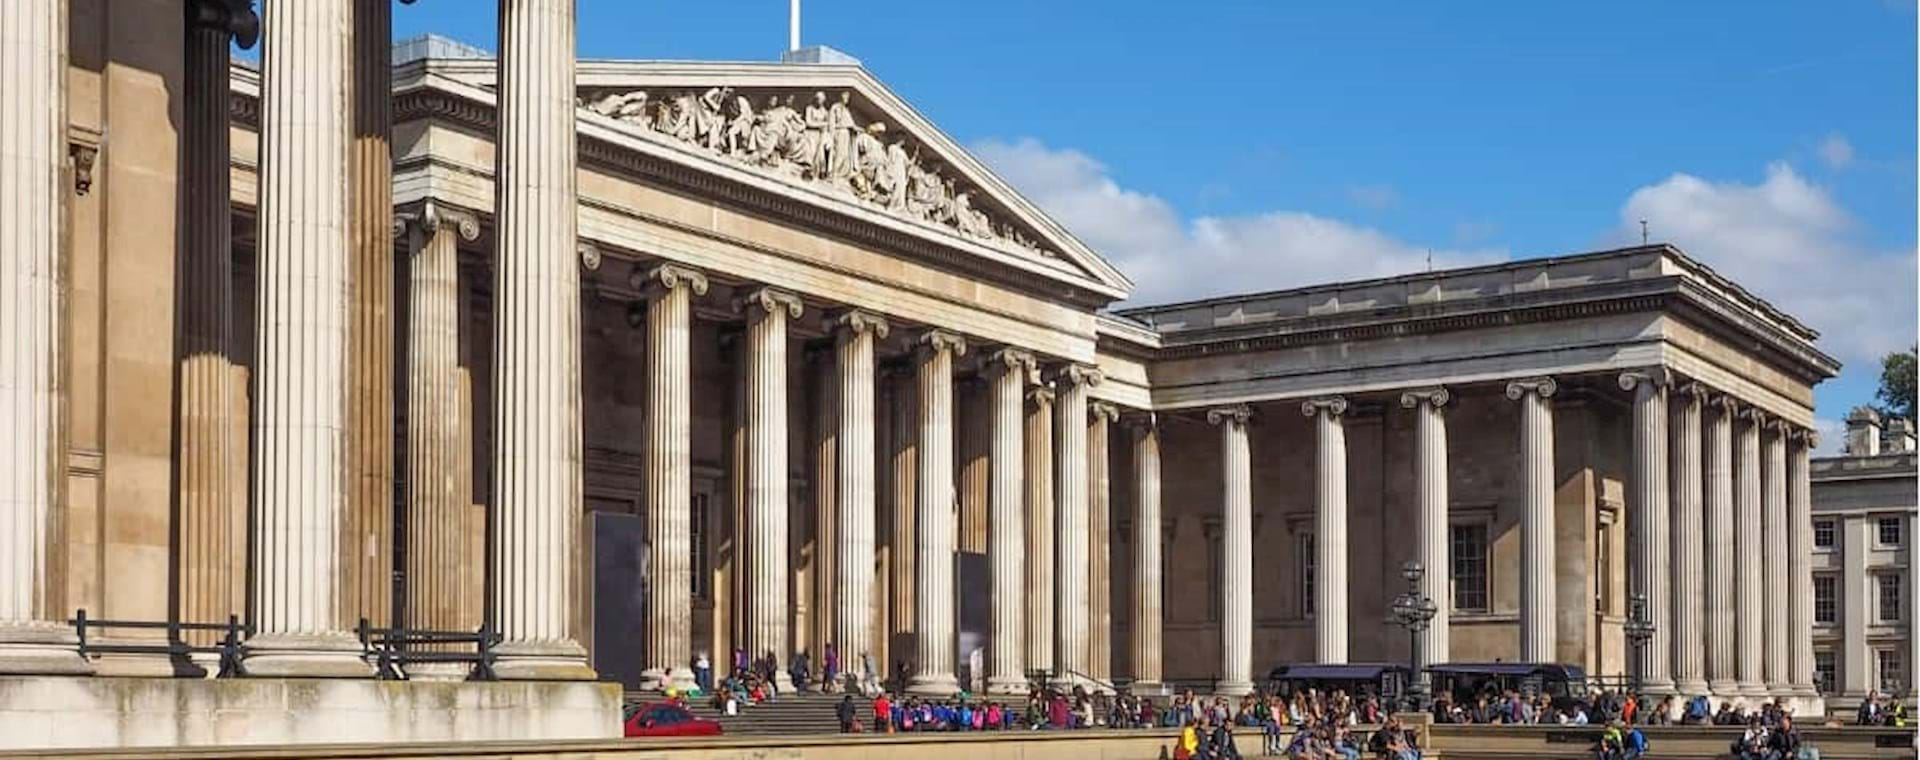 Facade of the British Museum on a sunny day in London